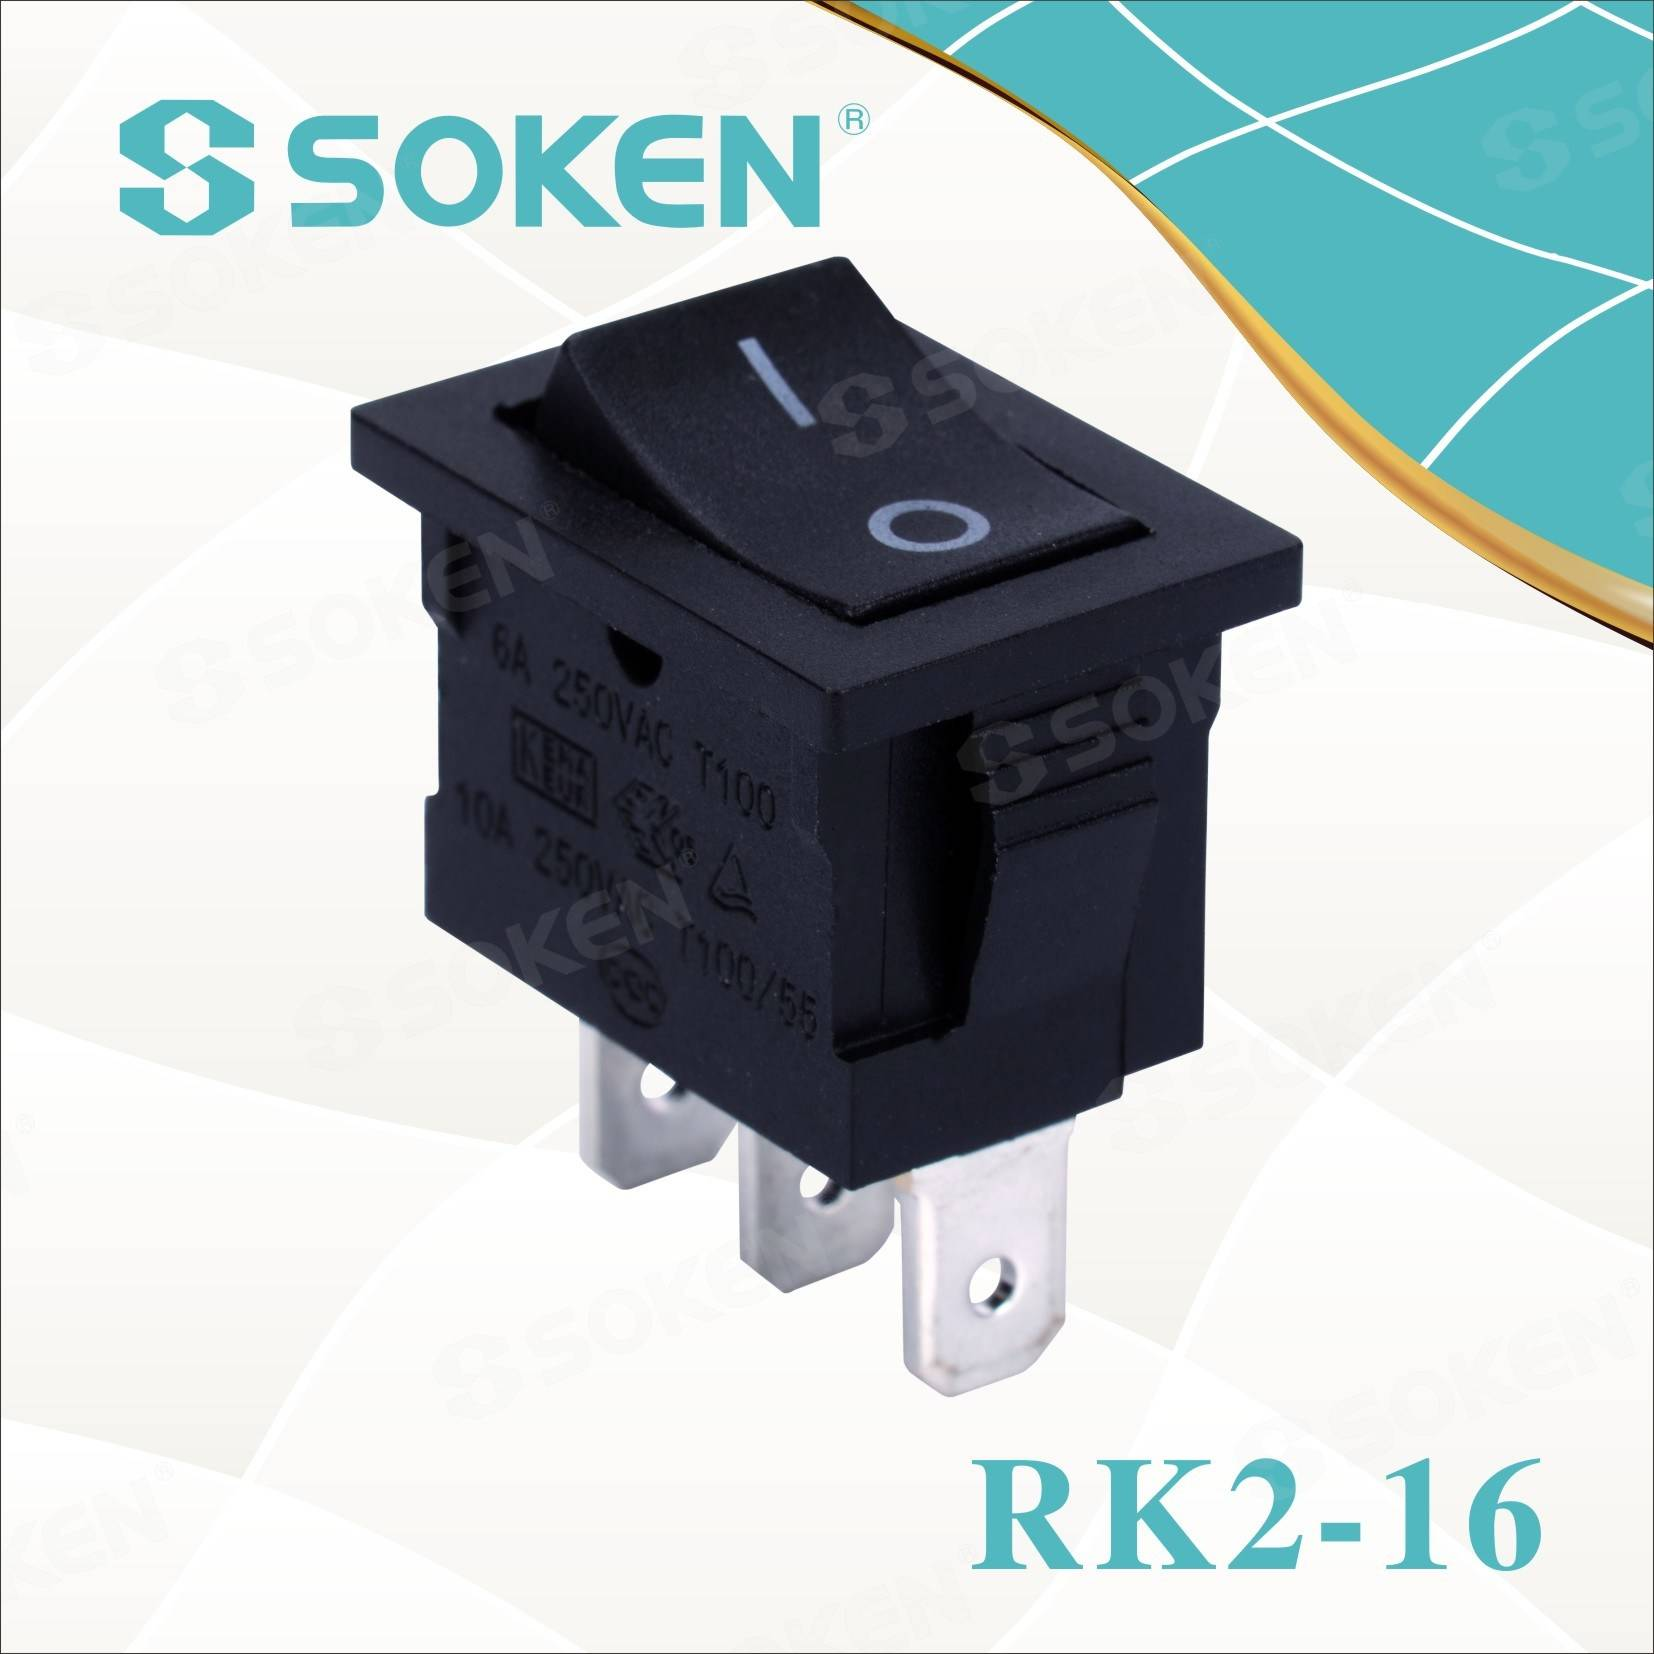 Sokne Rk2-16 1x2 ar ar Rocker Switch